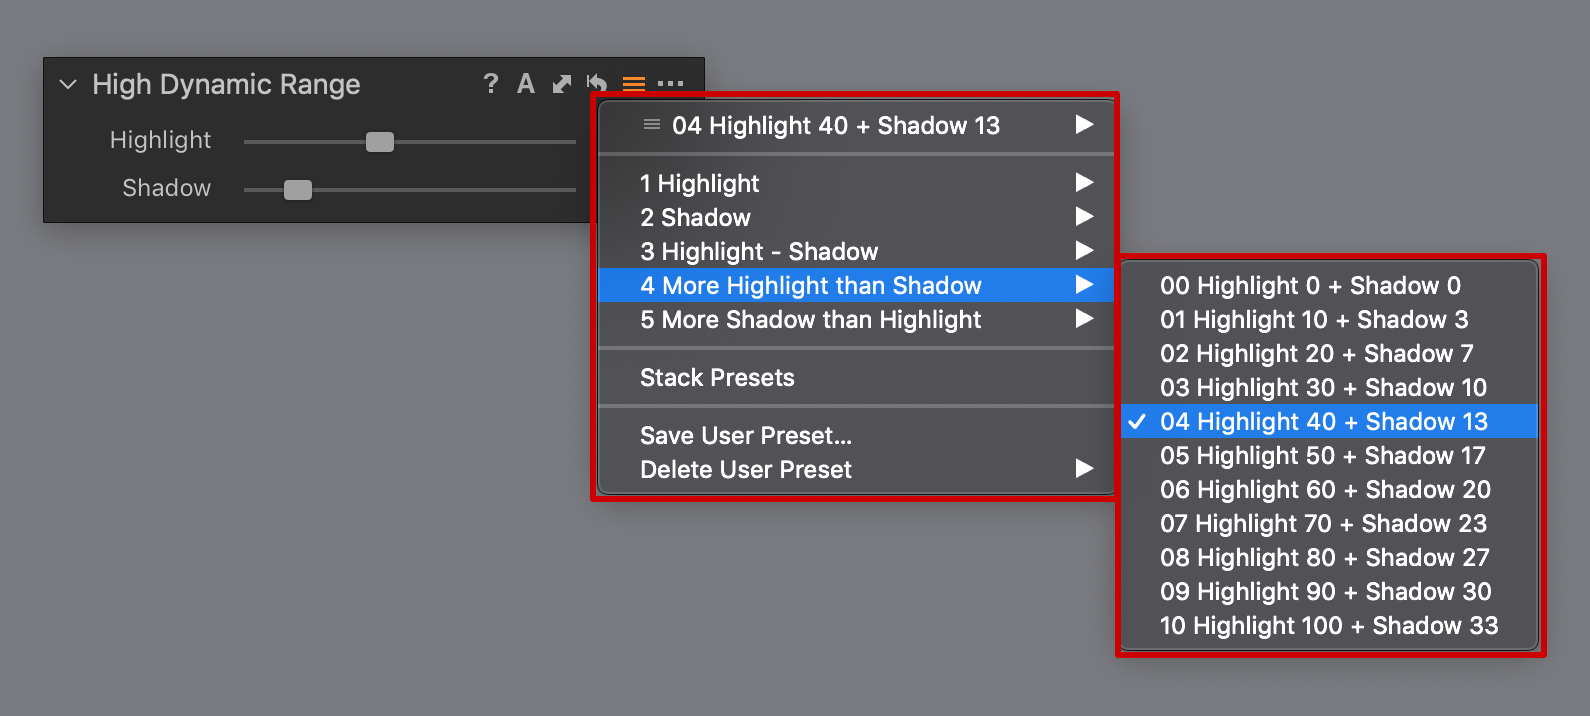 capture one high dynamic range presets, capture one 12